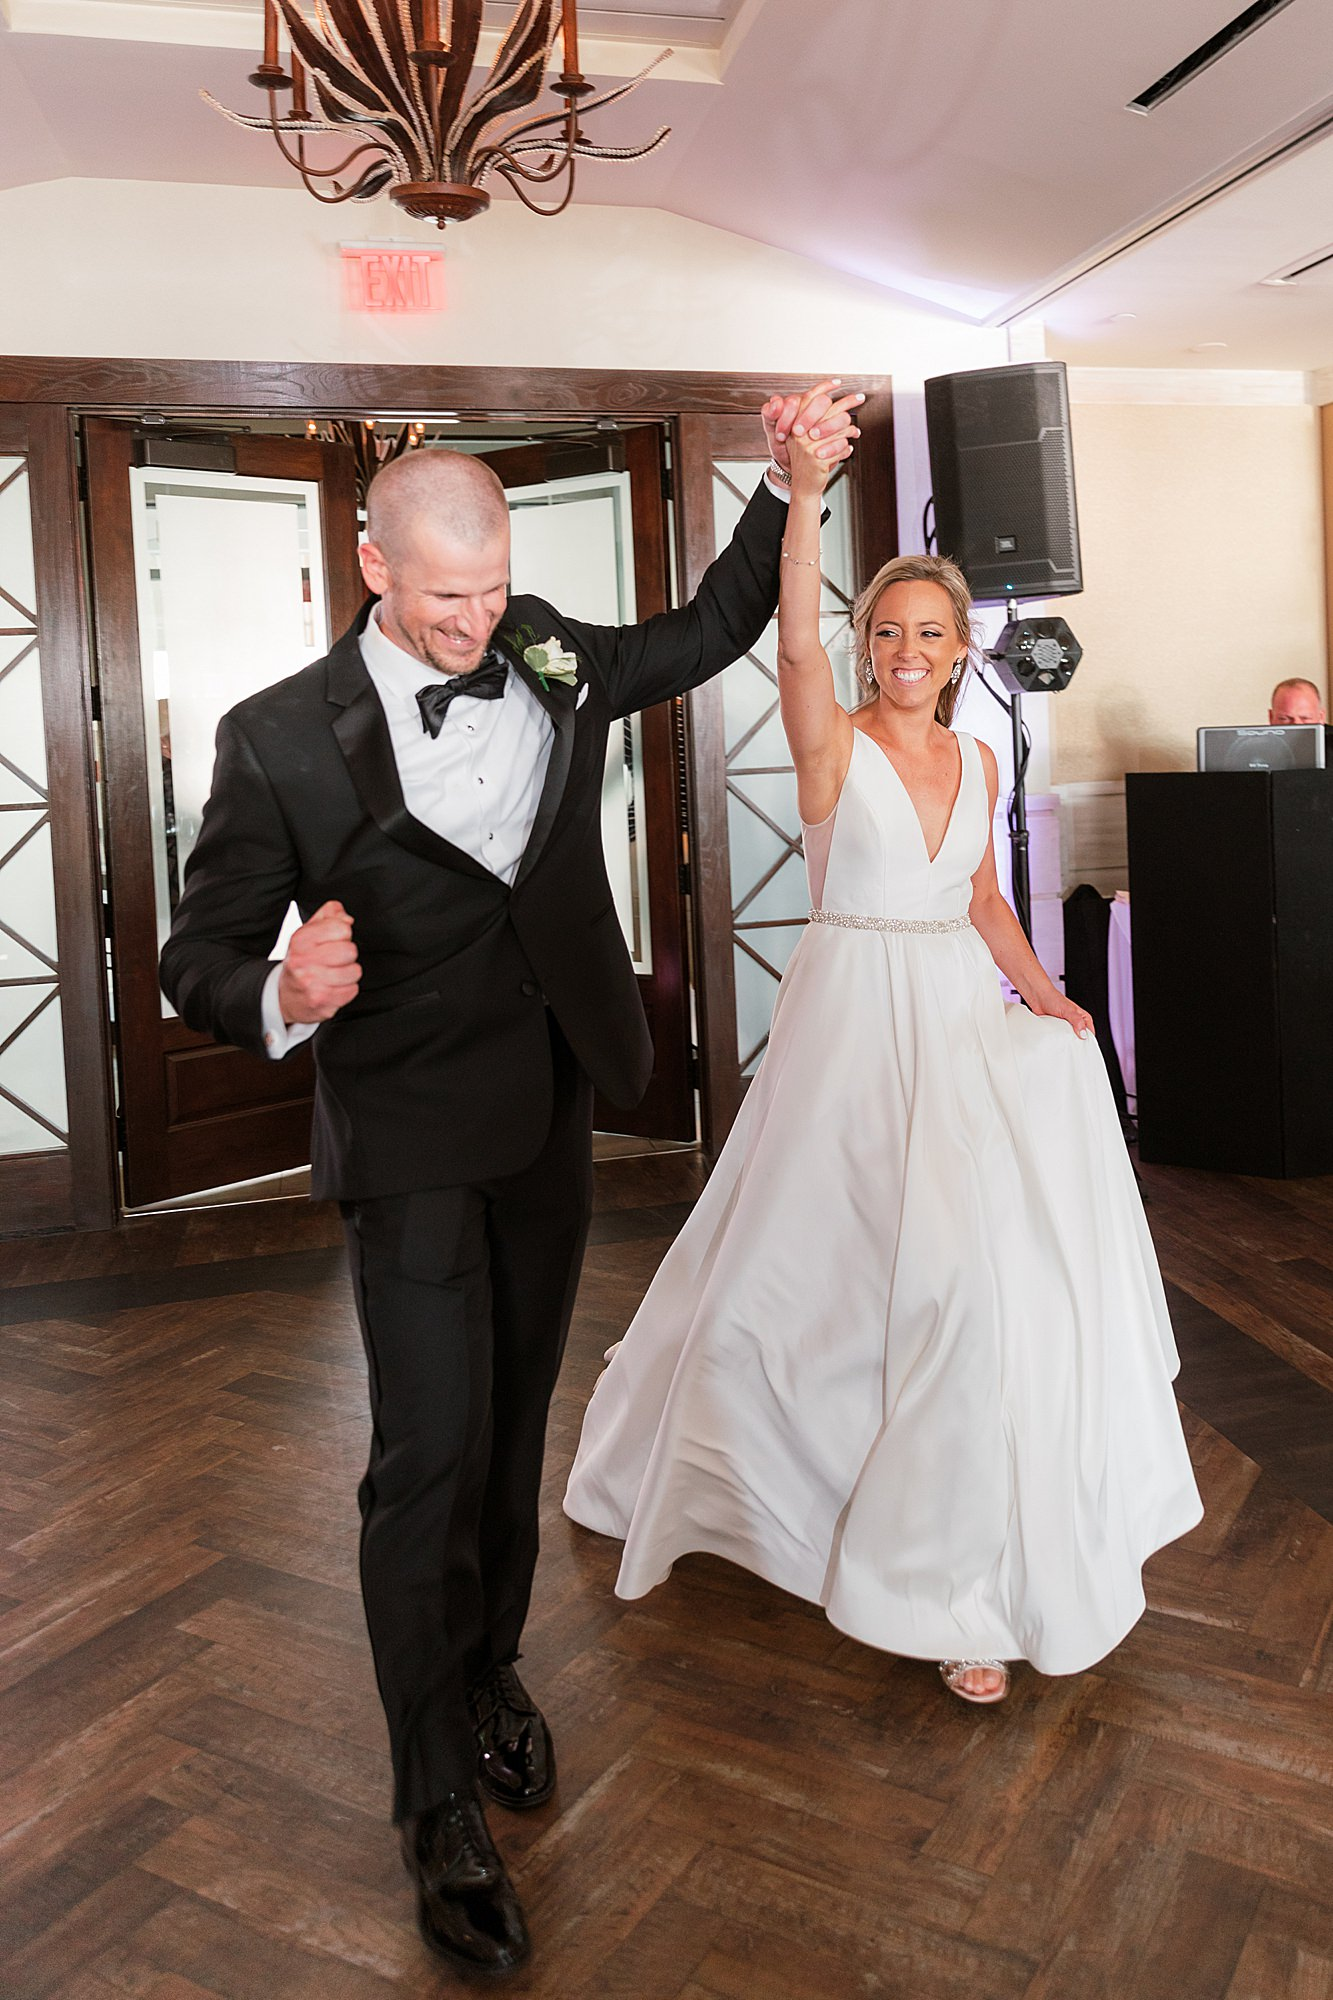 Natural and Vibrant Wedding Photography at the Reeds in Stone Harbor NJ by Magdalena Studios 0056